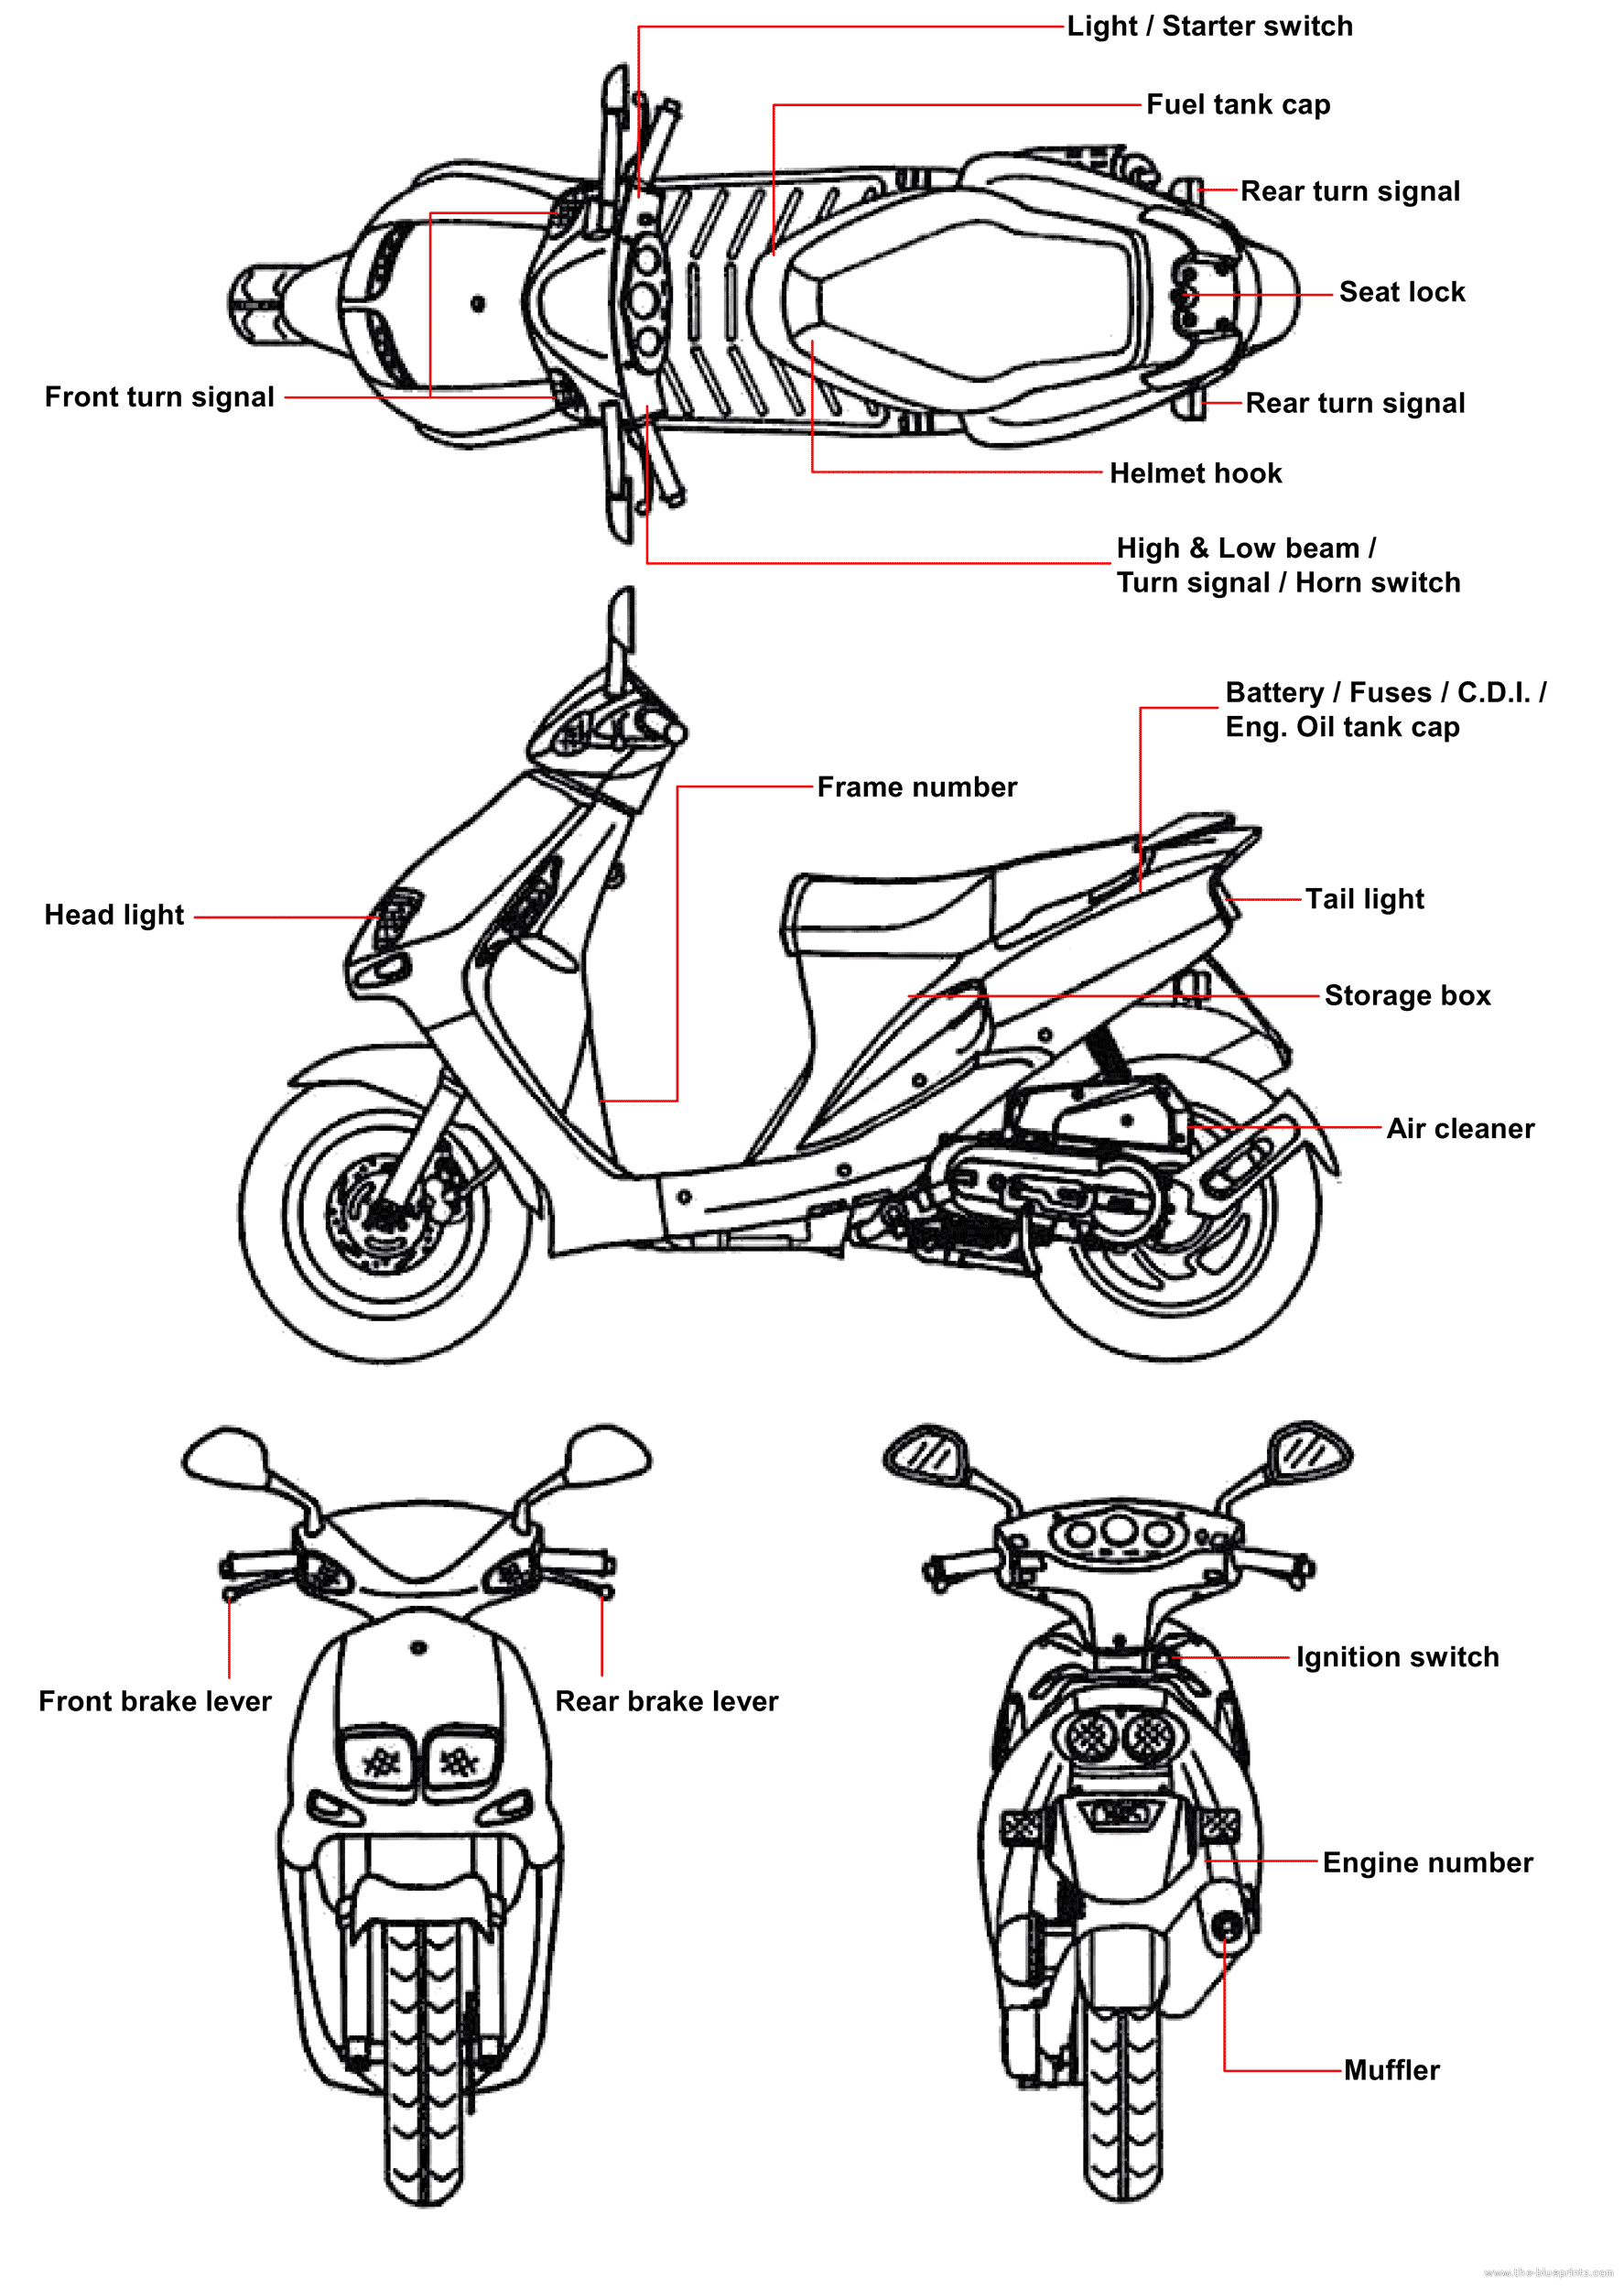 sym scooter wiring diagram scooter carburetor